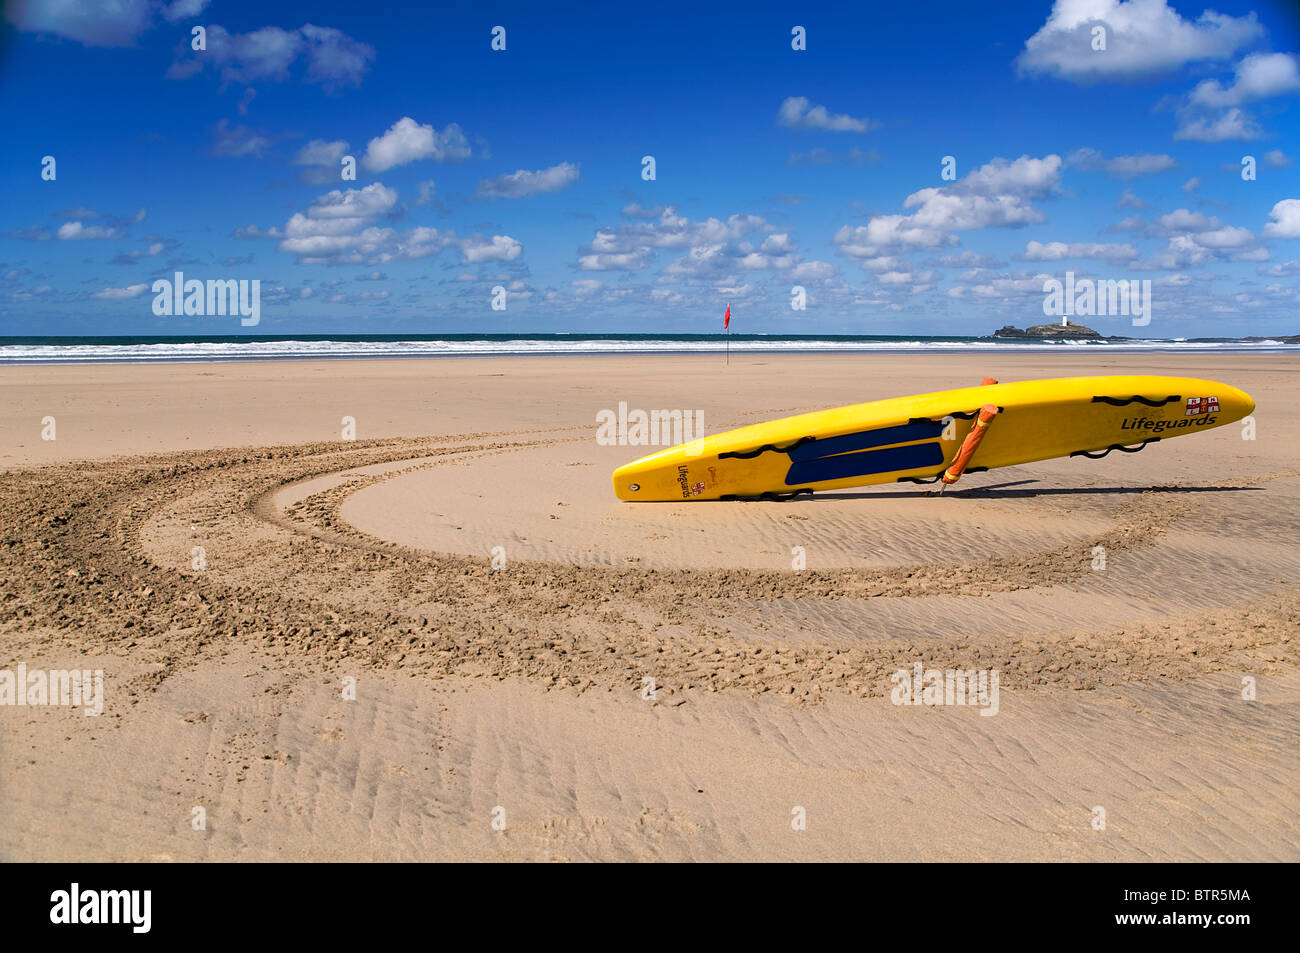 Life saver on beach in cornwall - Stock Image